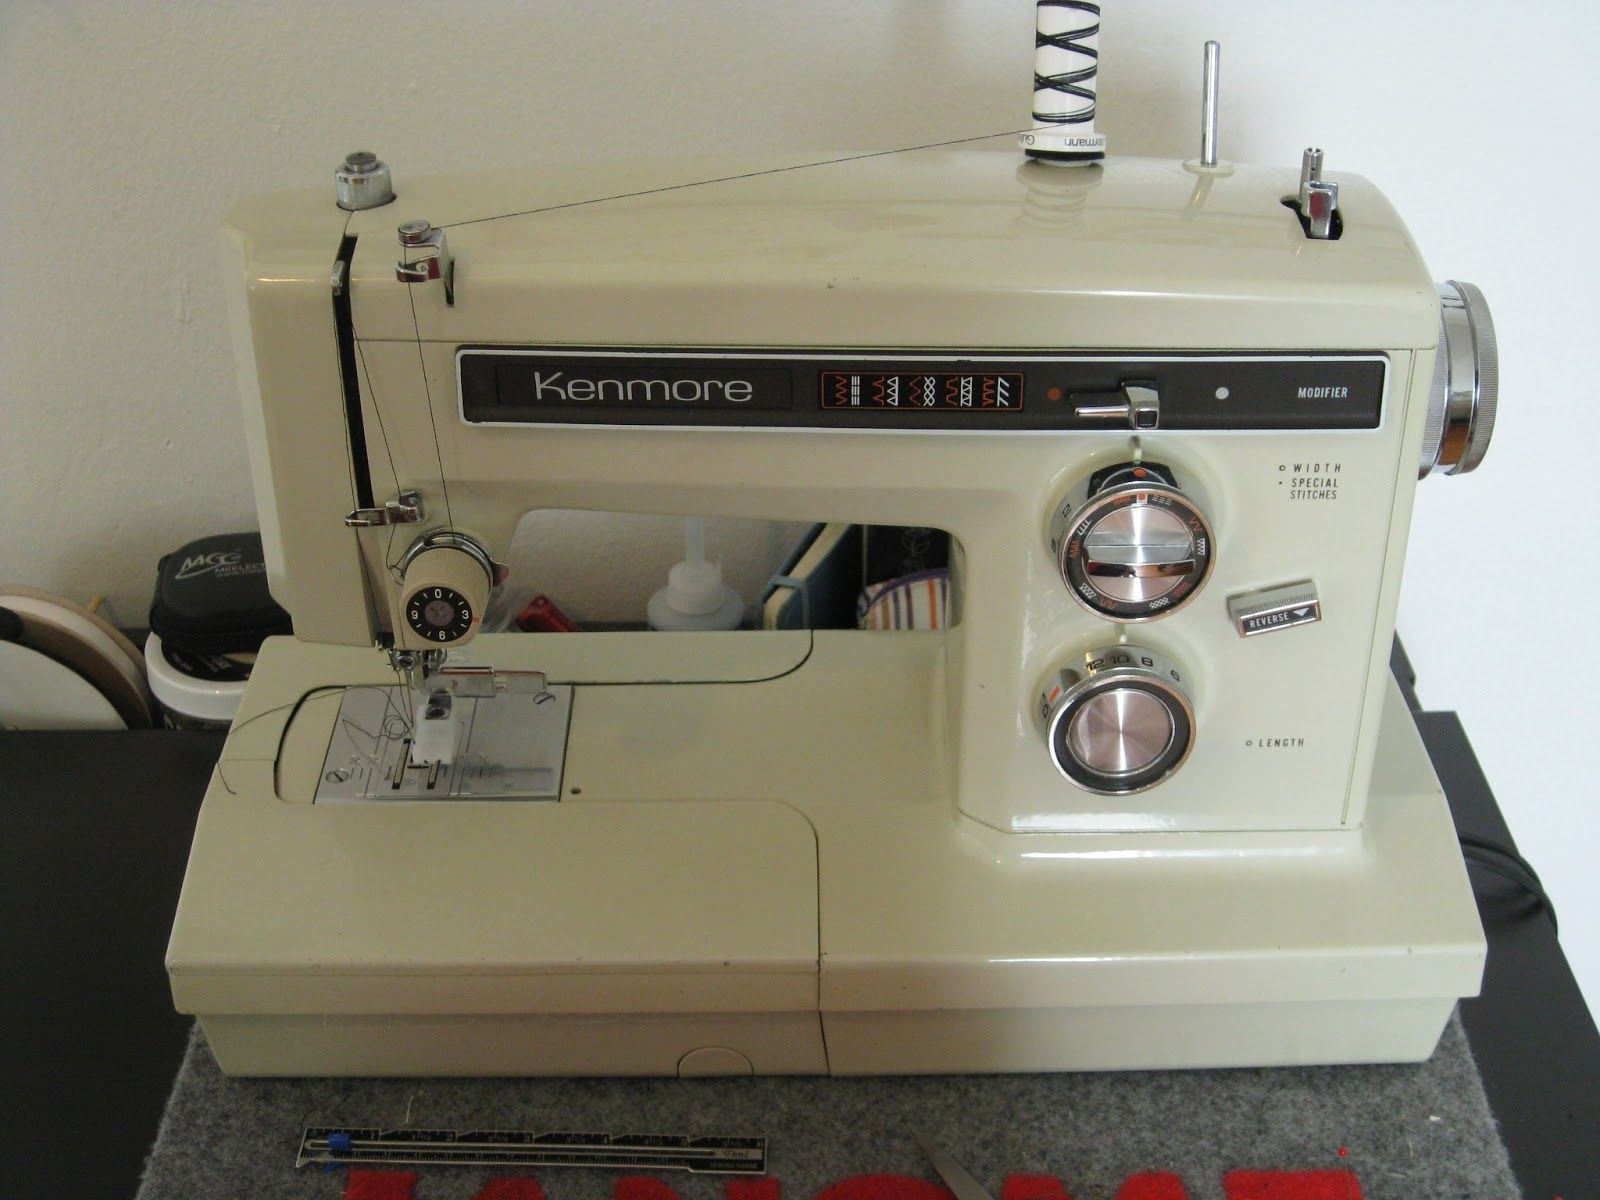 I would love my Nana's  Kenmore sewing machine serviced and repaired so I could use it to sew with.